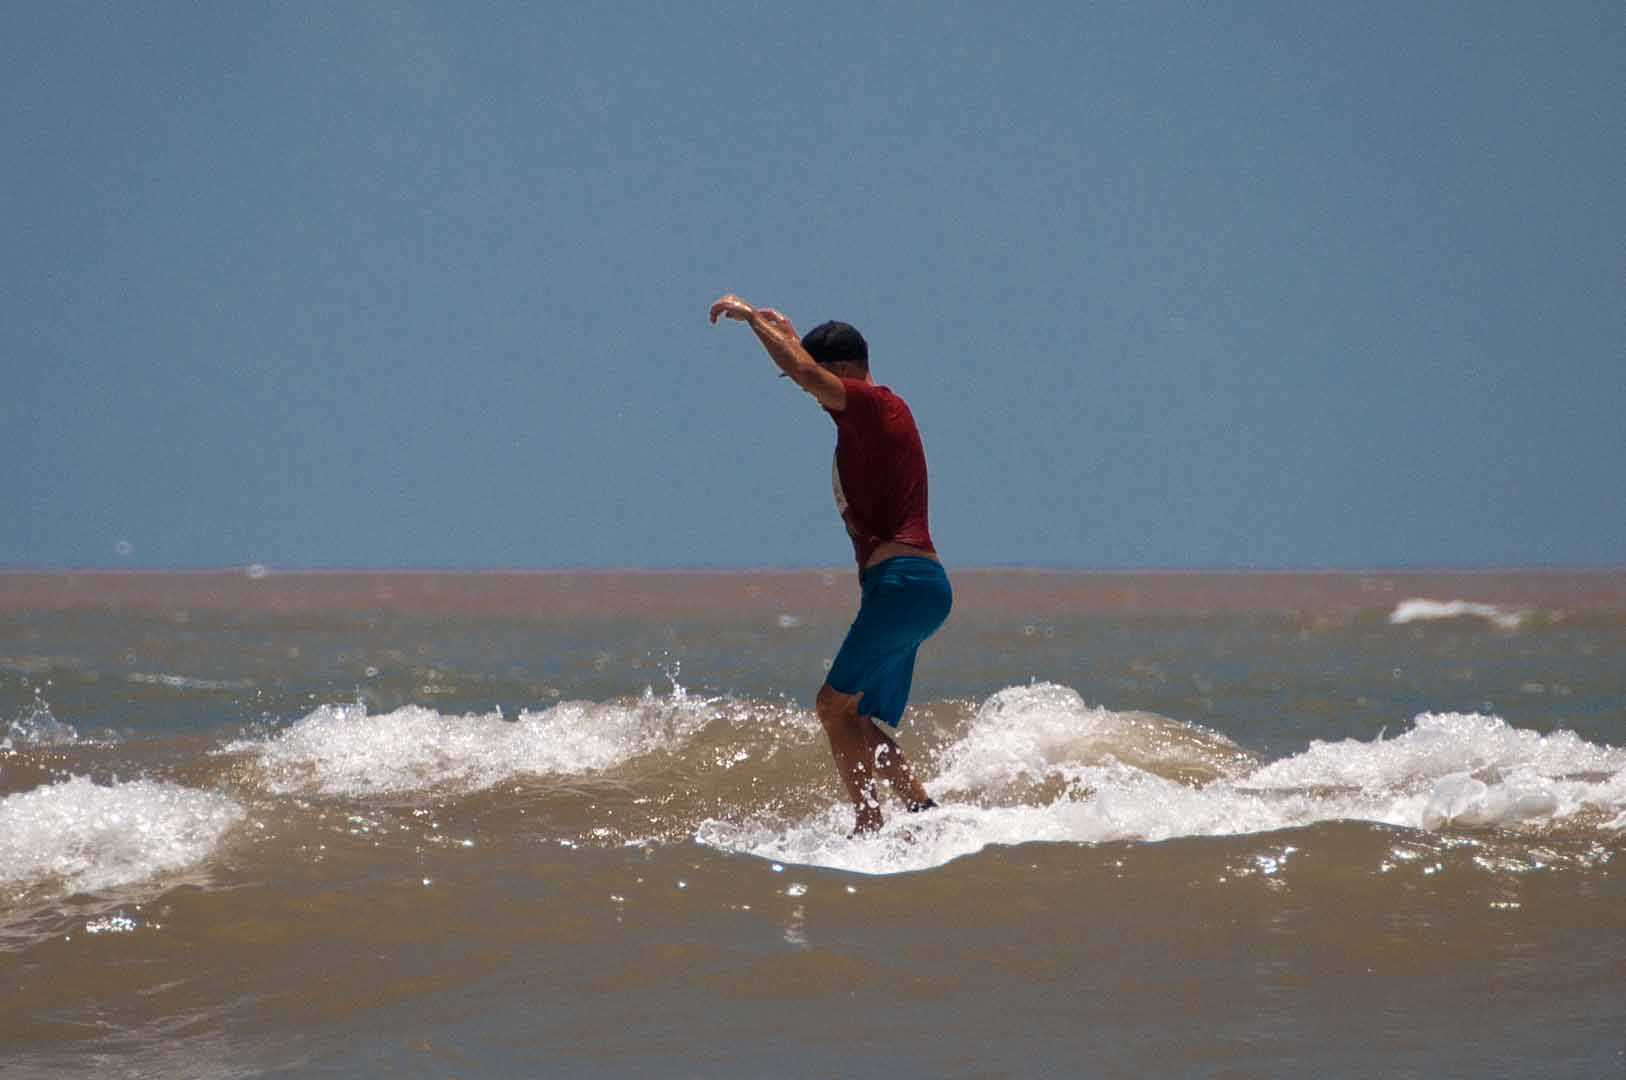 SurfsideLateJune_20150627_229